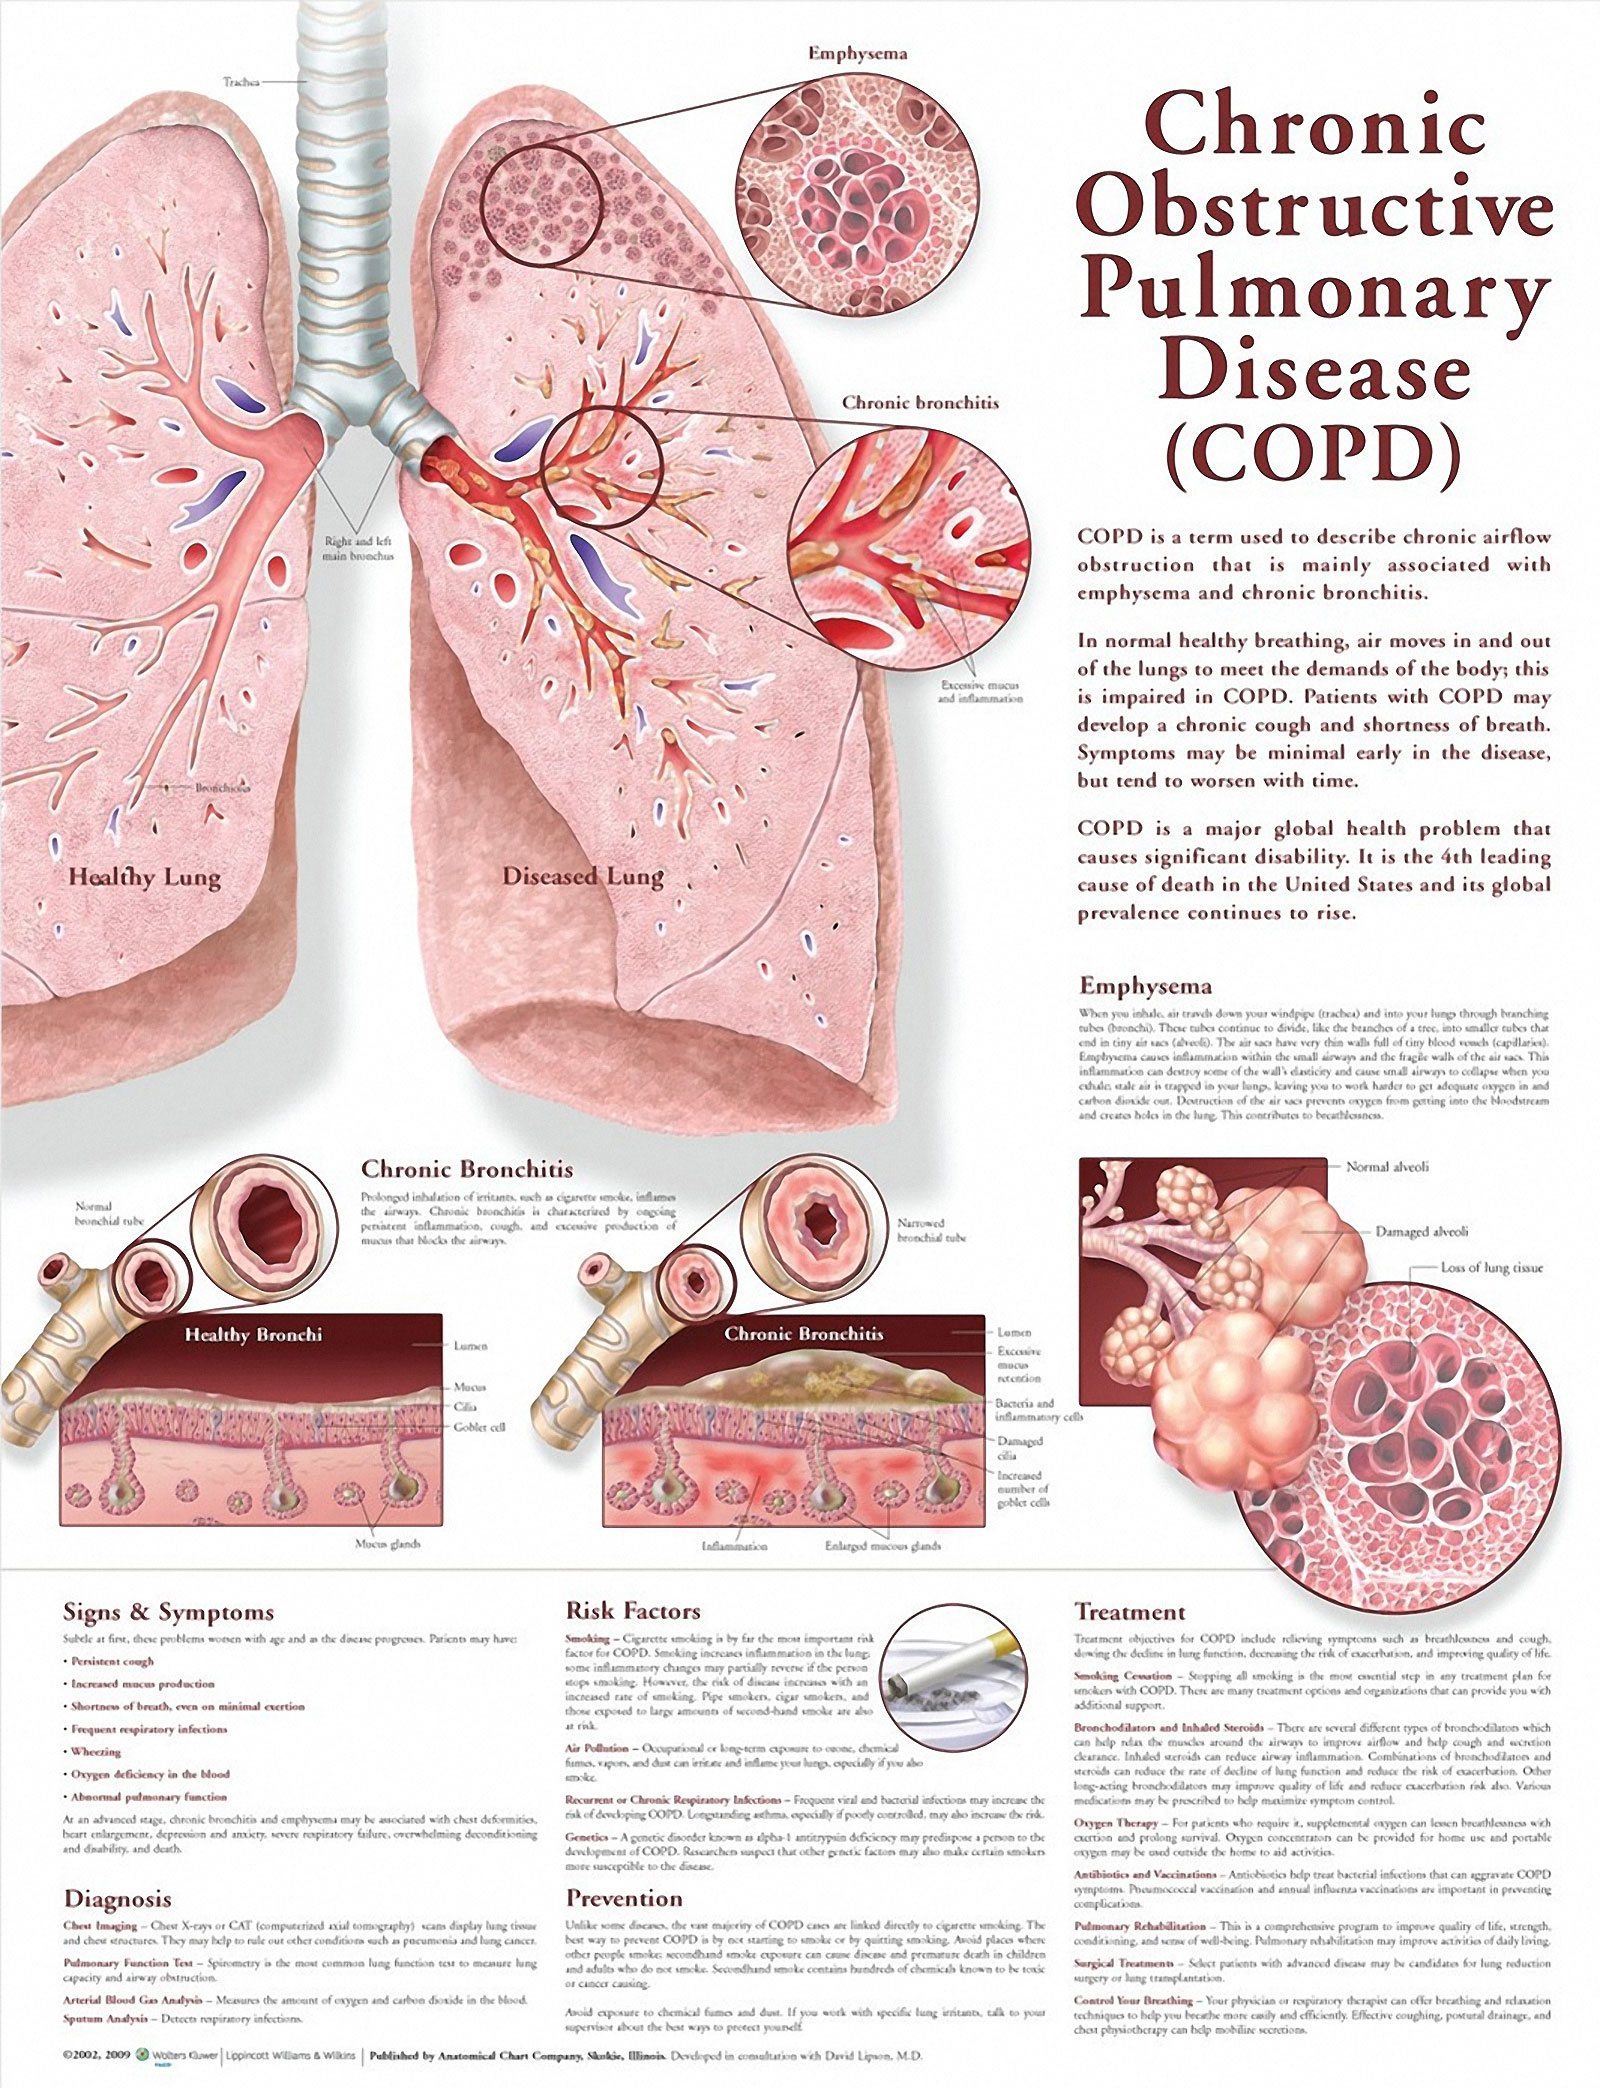 Facts and details about Chronic Obstructive Pulmonary Disease infogragphic